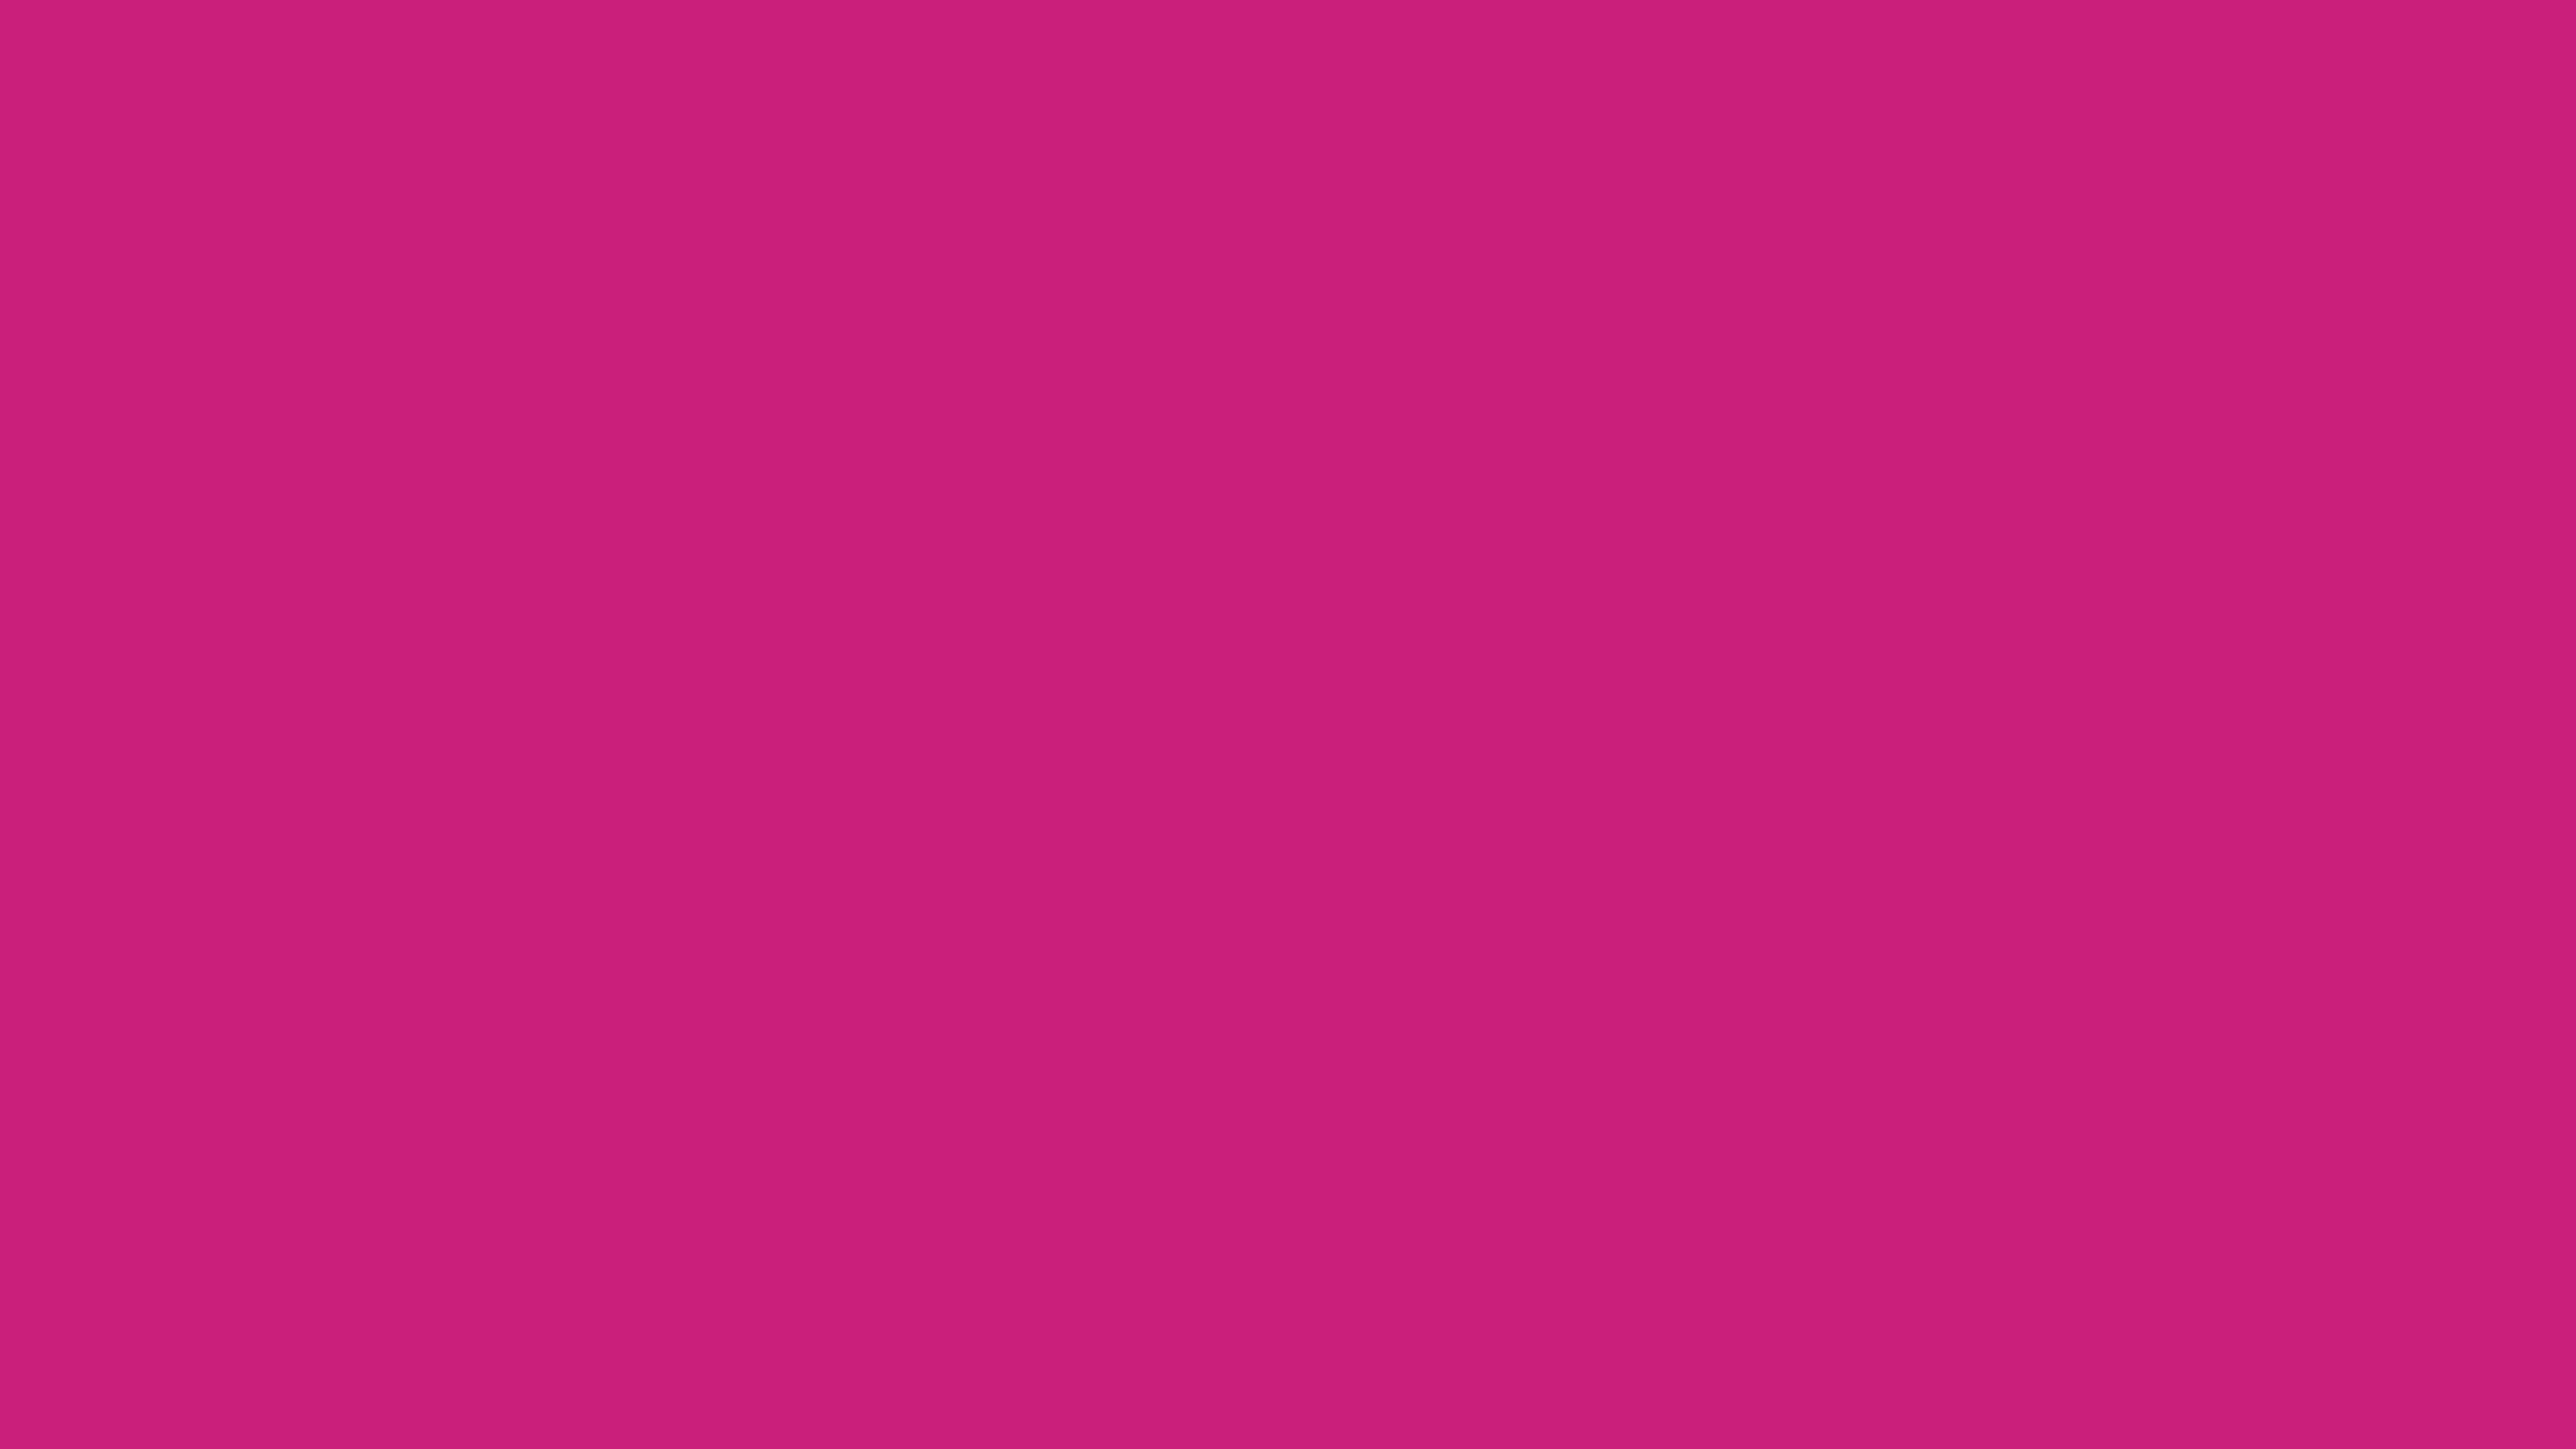 3840x2160 Magenta Dye Solid Color Background